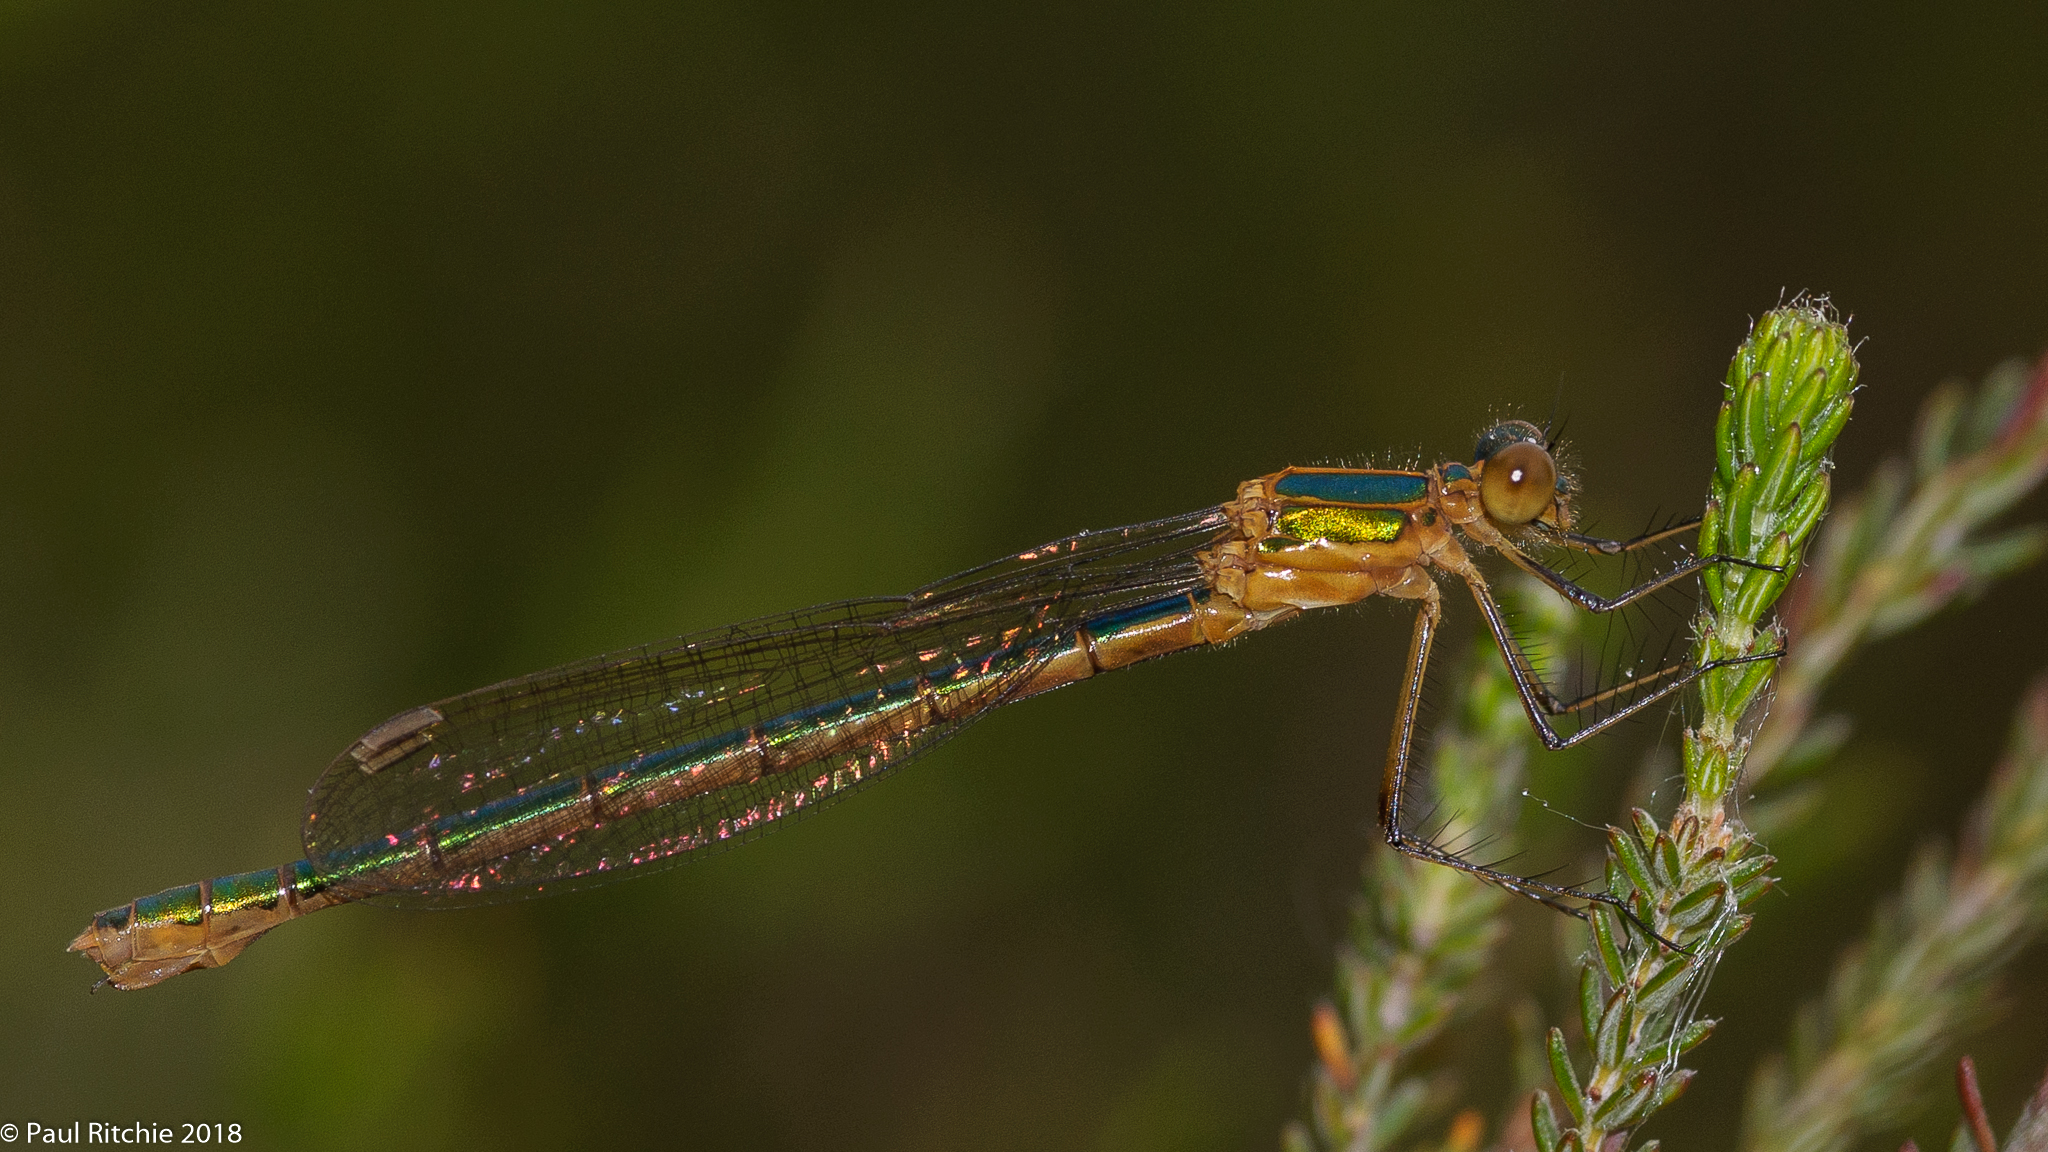 Common Emerald Damselfly (Lestes sponsa) - immature female